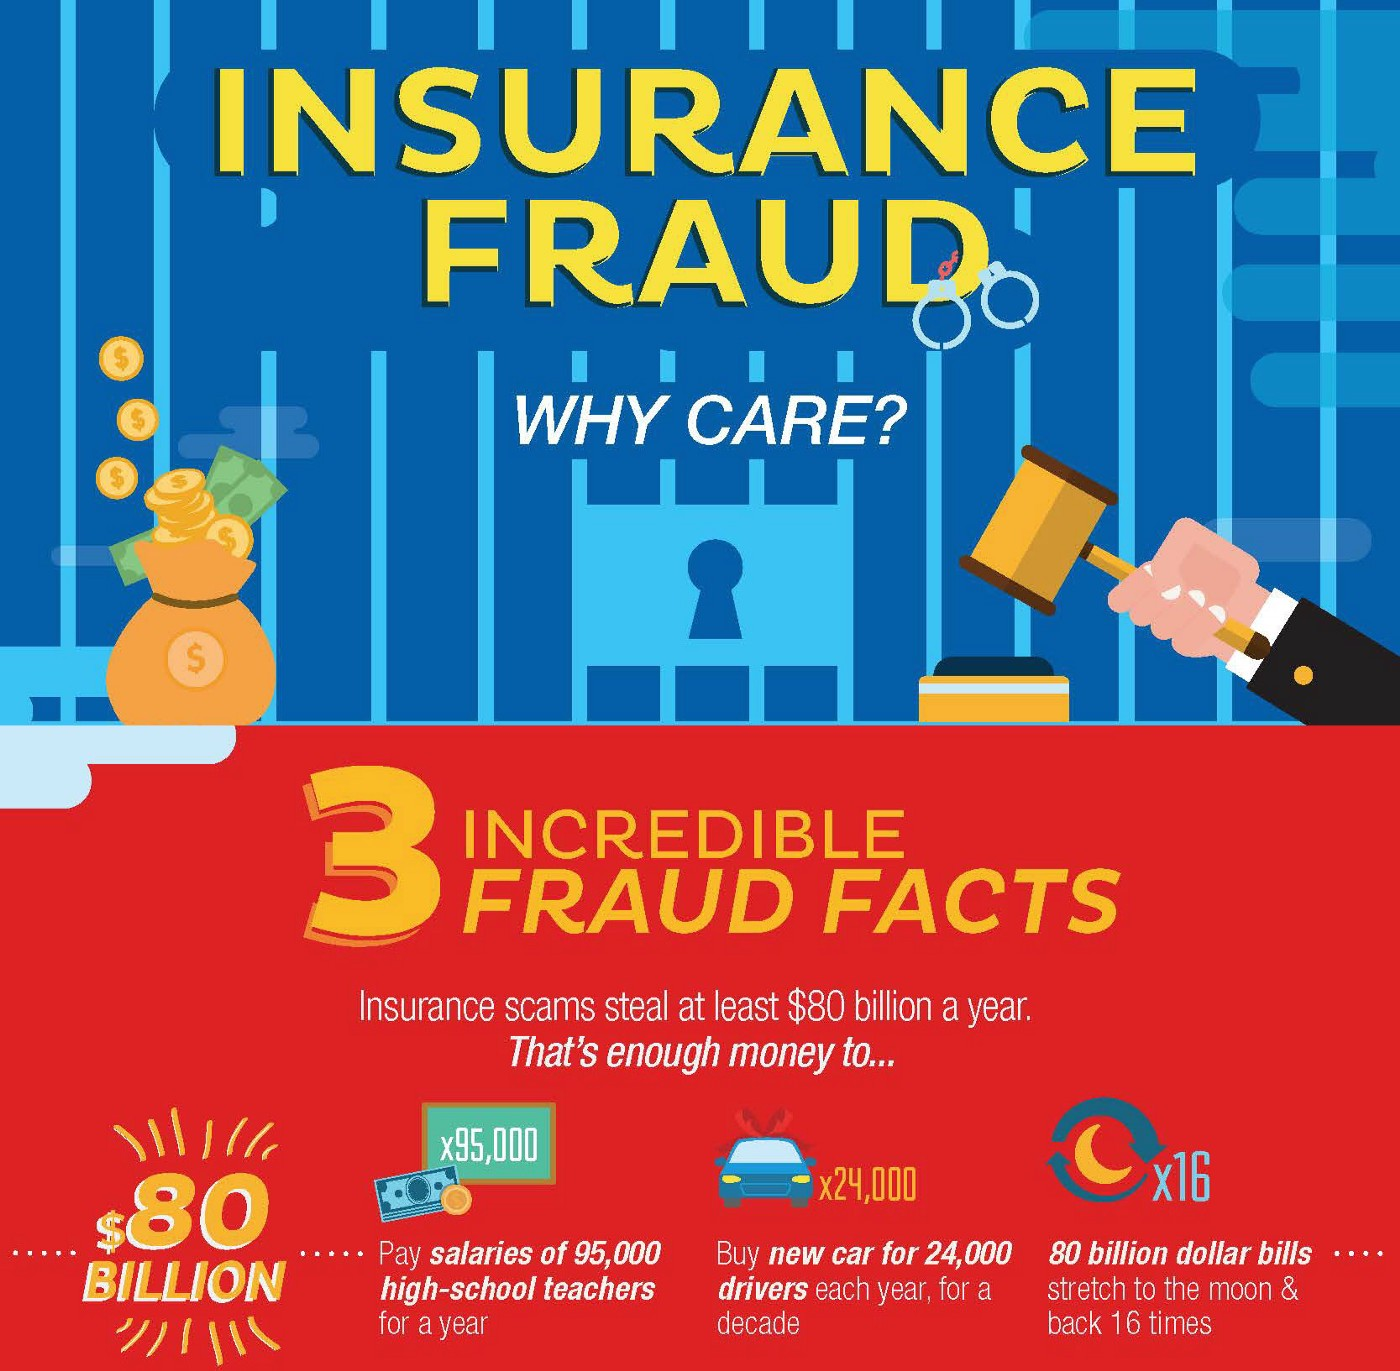 3 facts about insurance fraud and the harm it causes to consumers